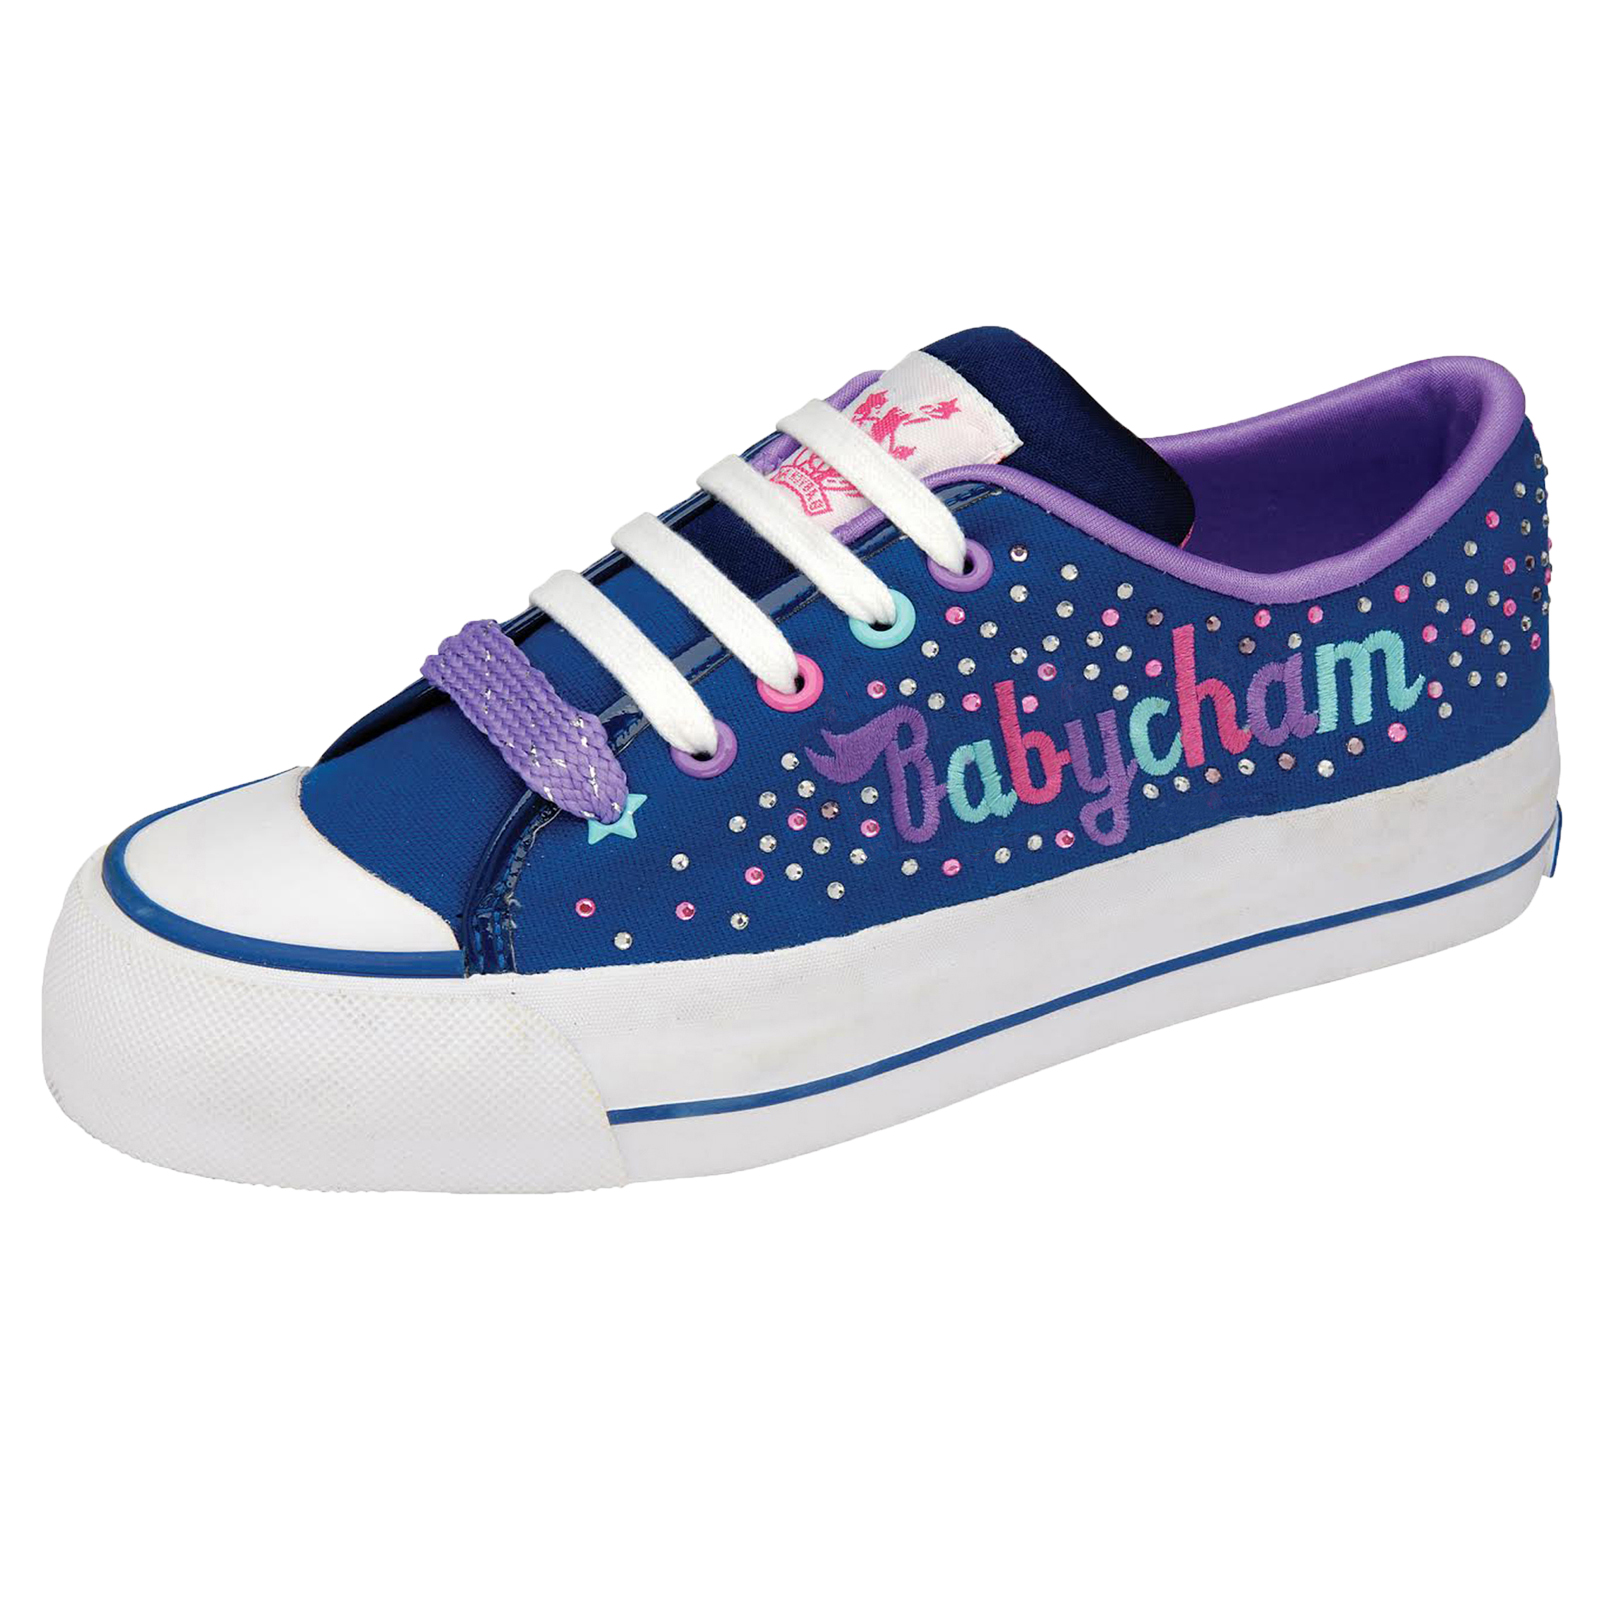 2017 Babycham Marina Multi Flatform Navy/Purple Women Trainers